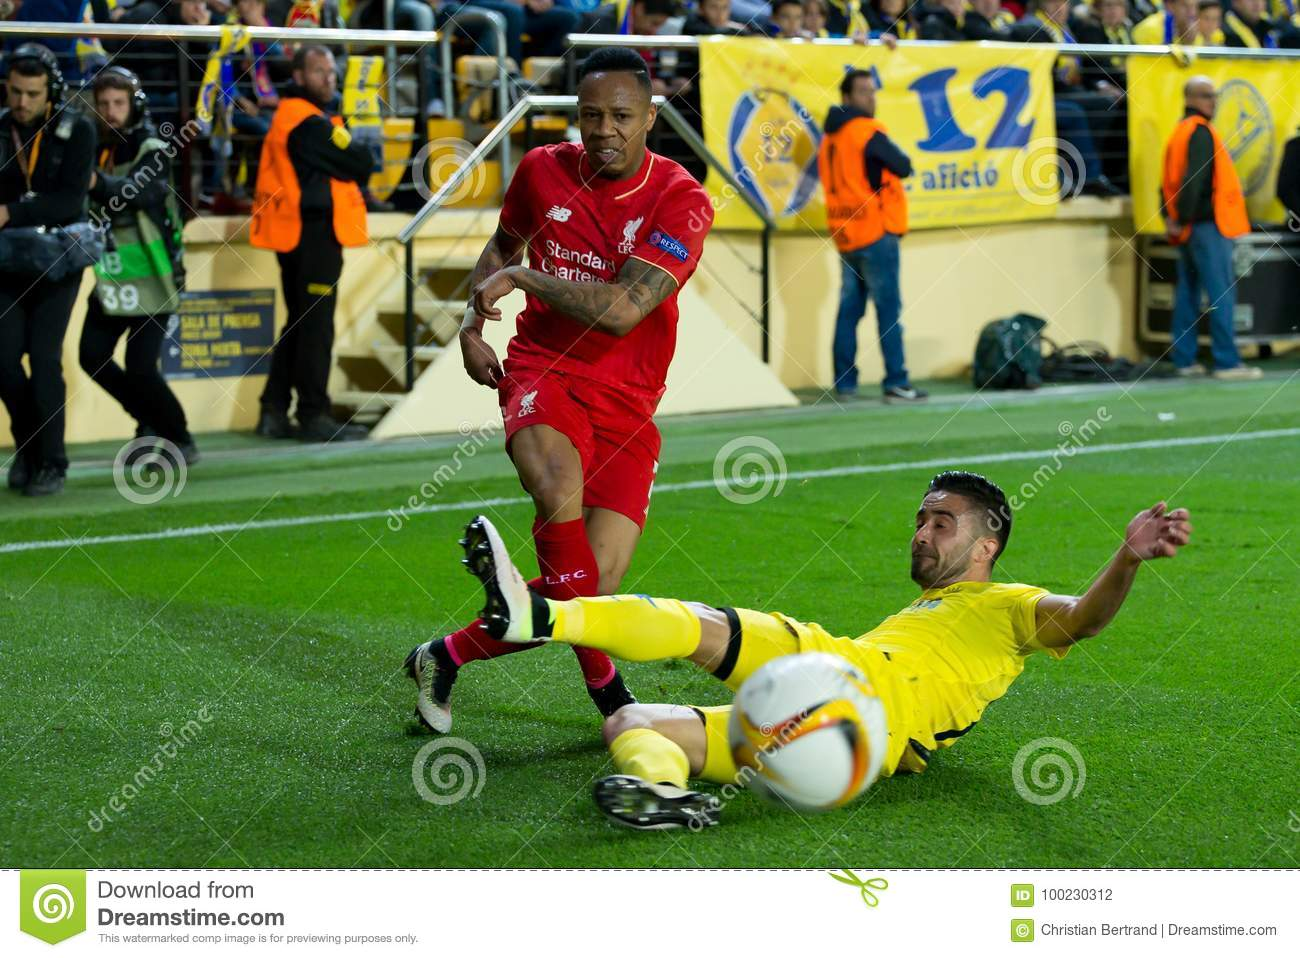 Nathaniel Clyne plays at the Europa League semifinal match between Villarreal CF and Liverpool FC